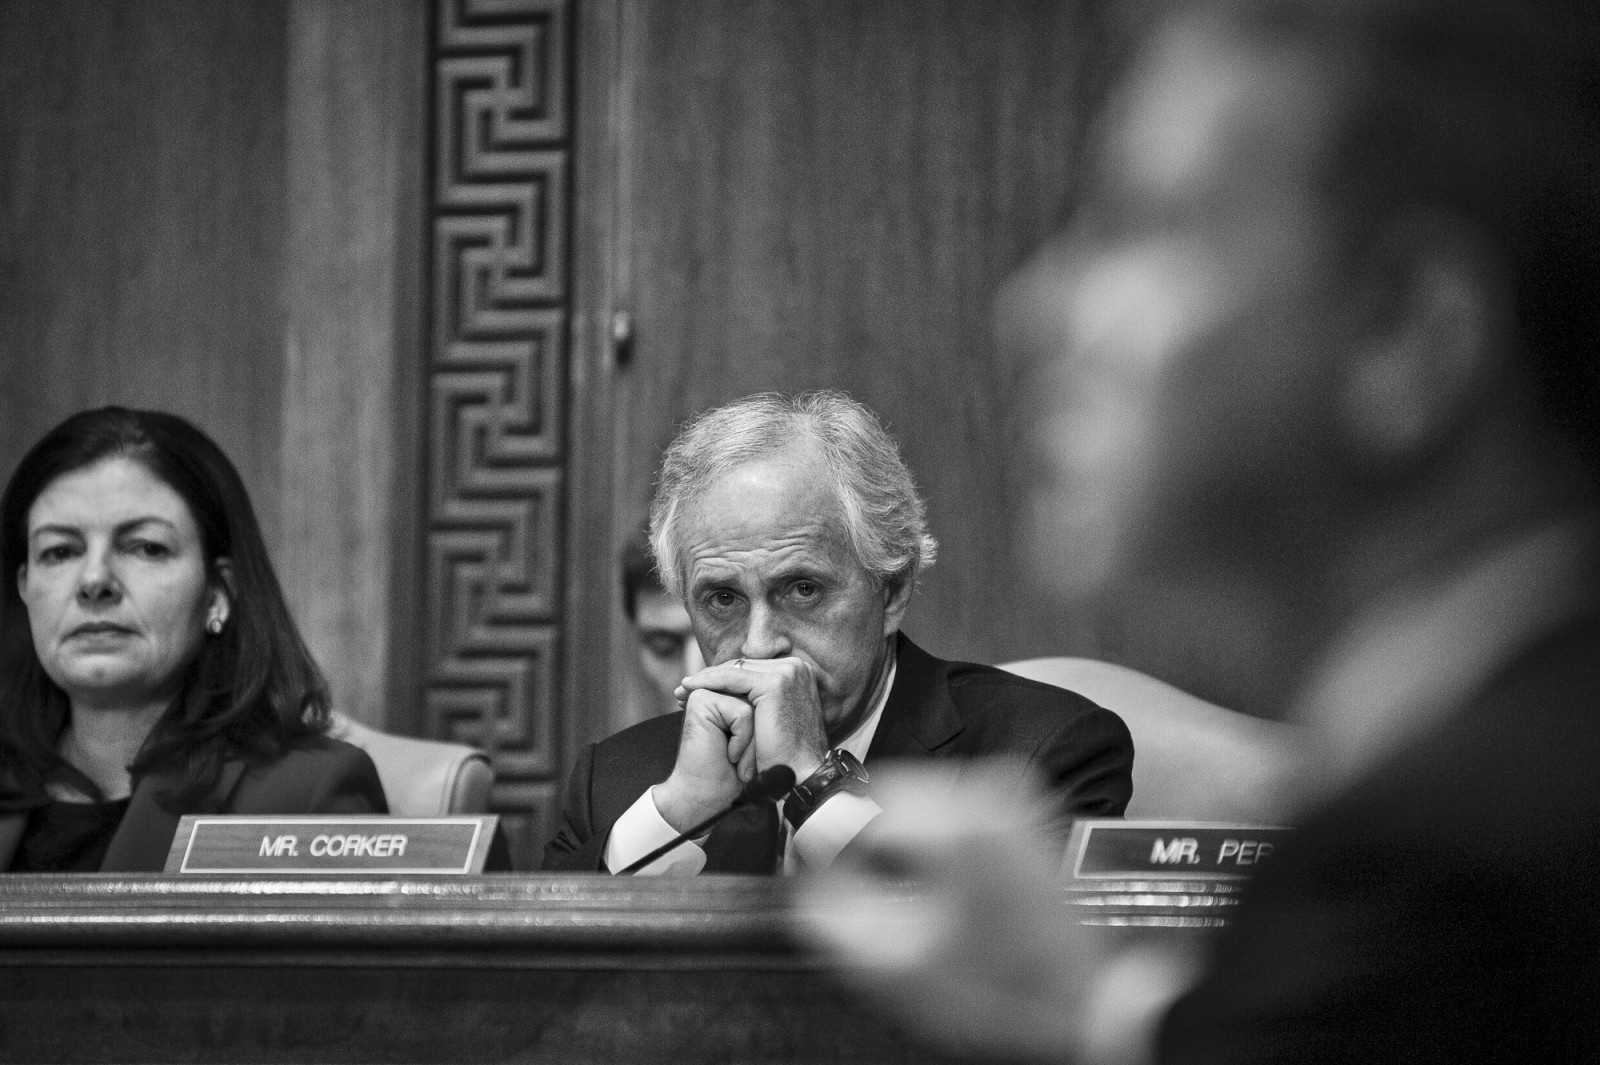 Senator Bob Corker (R-TN) looks on as Office of Management and Budget Director Shaun Donovan testifies before the Senate Budget Committee on Capitol Hill in Washington, D.C. during a hearing on the president's FY2016 budget request on Feburary 3, 2015.